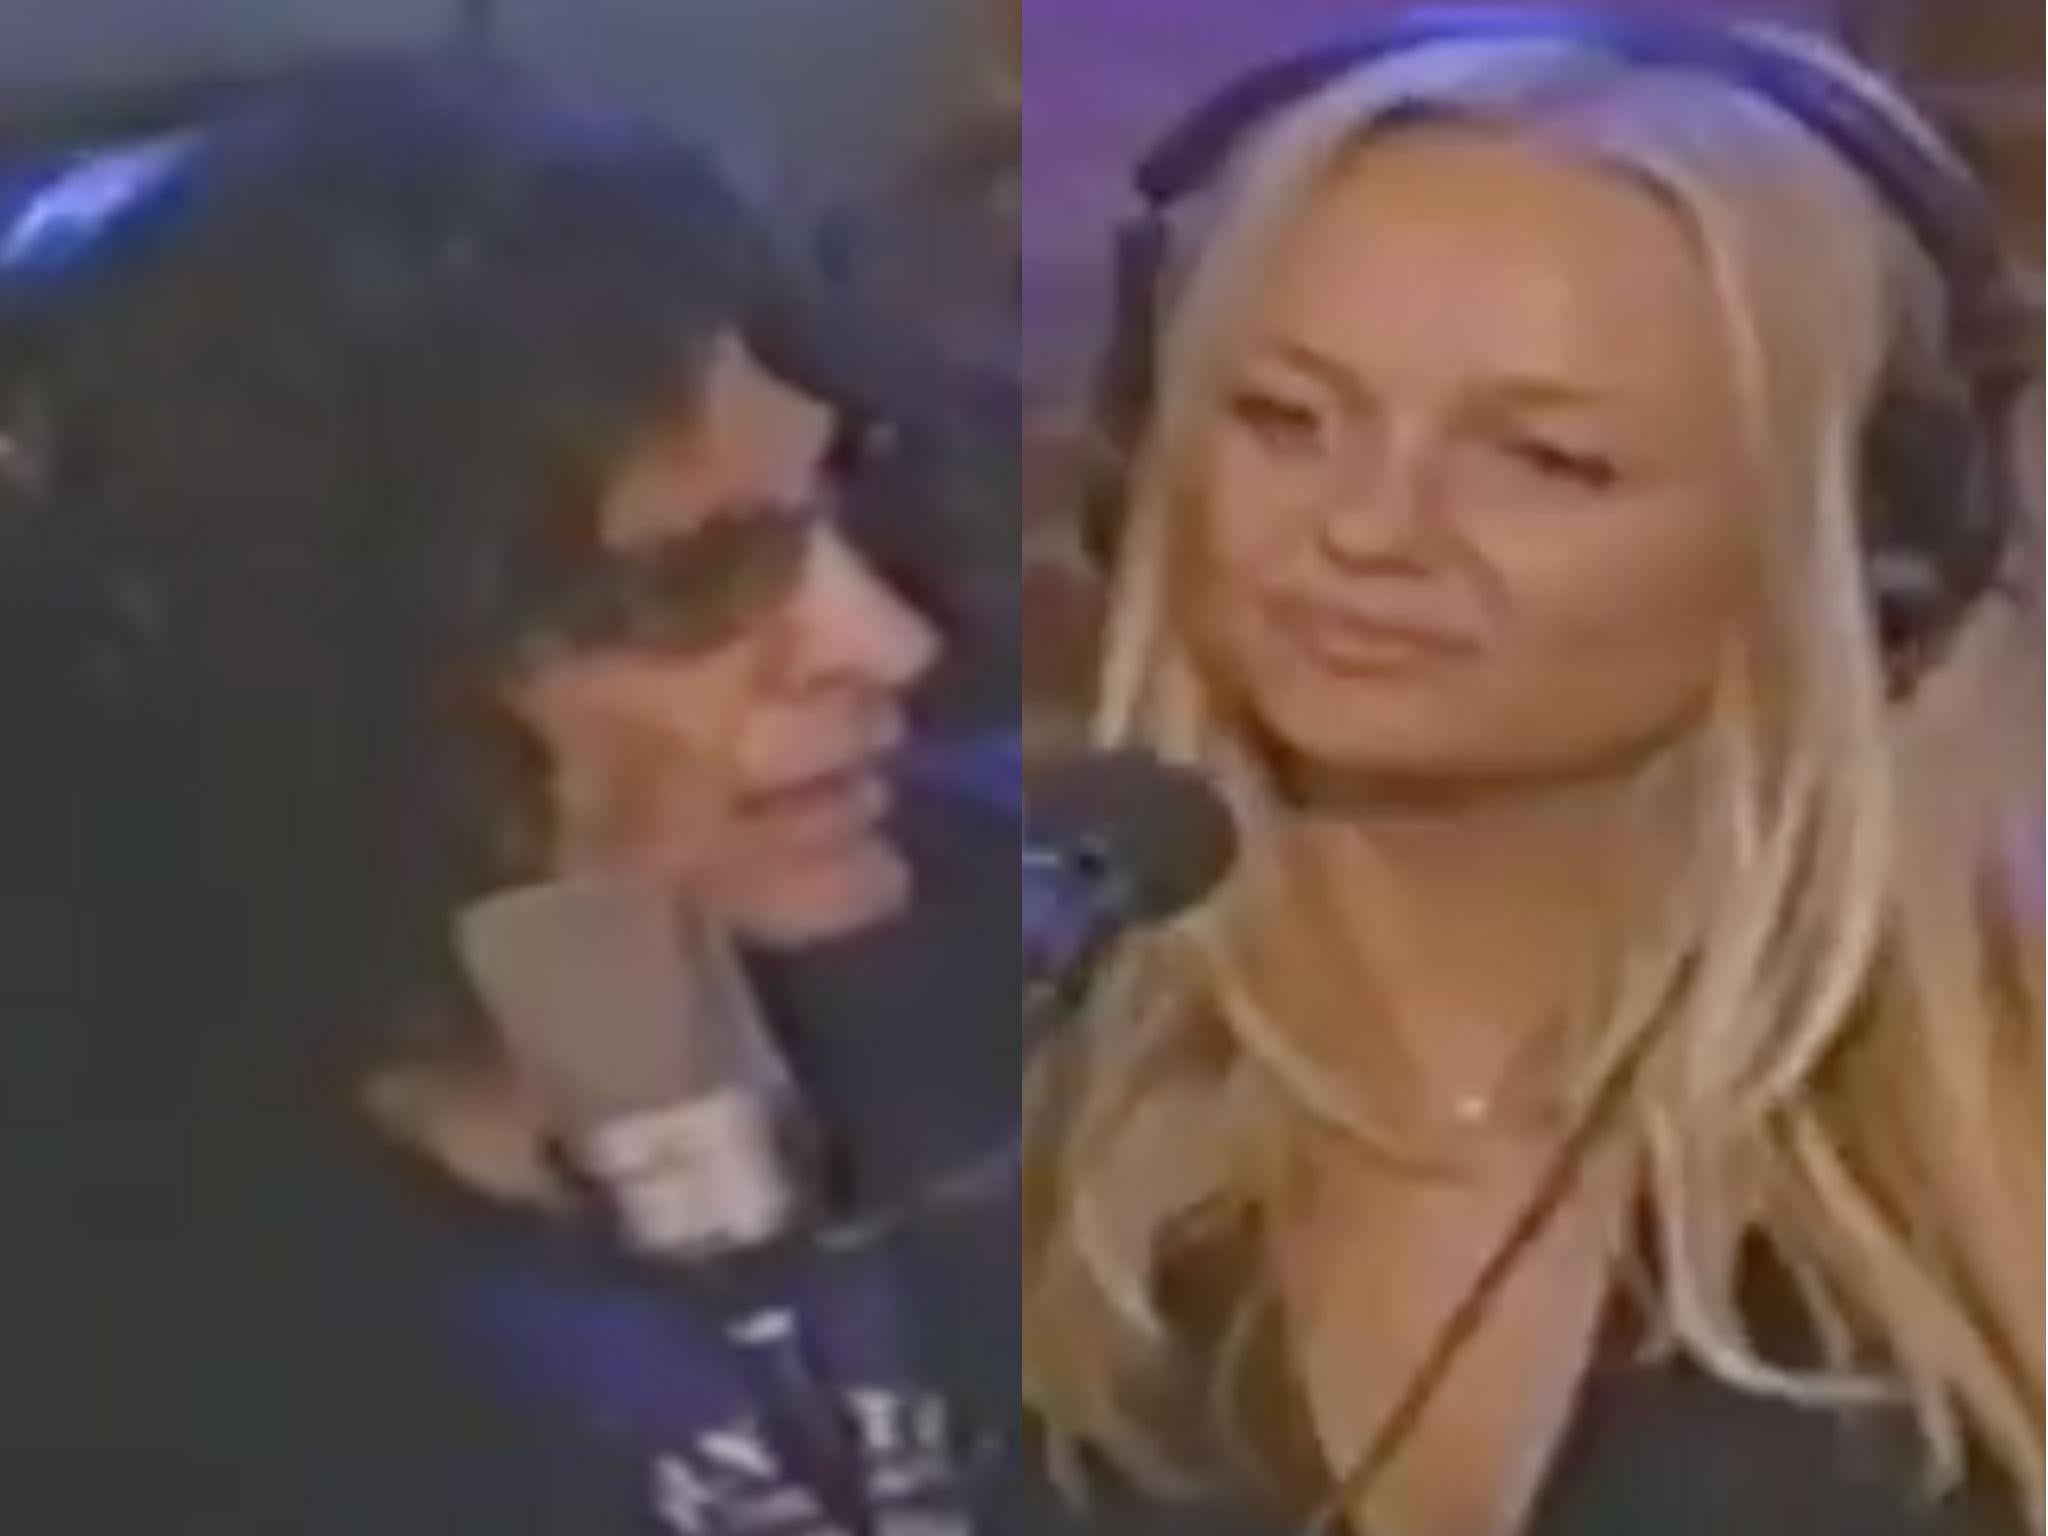 Howard Stern Naked Girls howard stern - latest news, breaking stories and comment